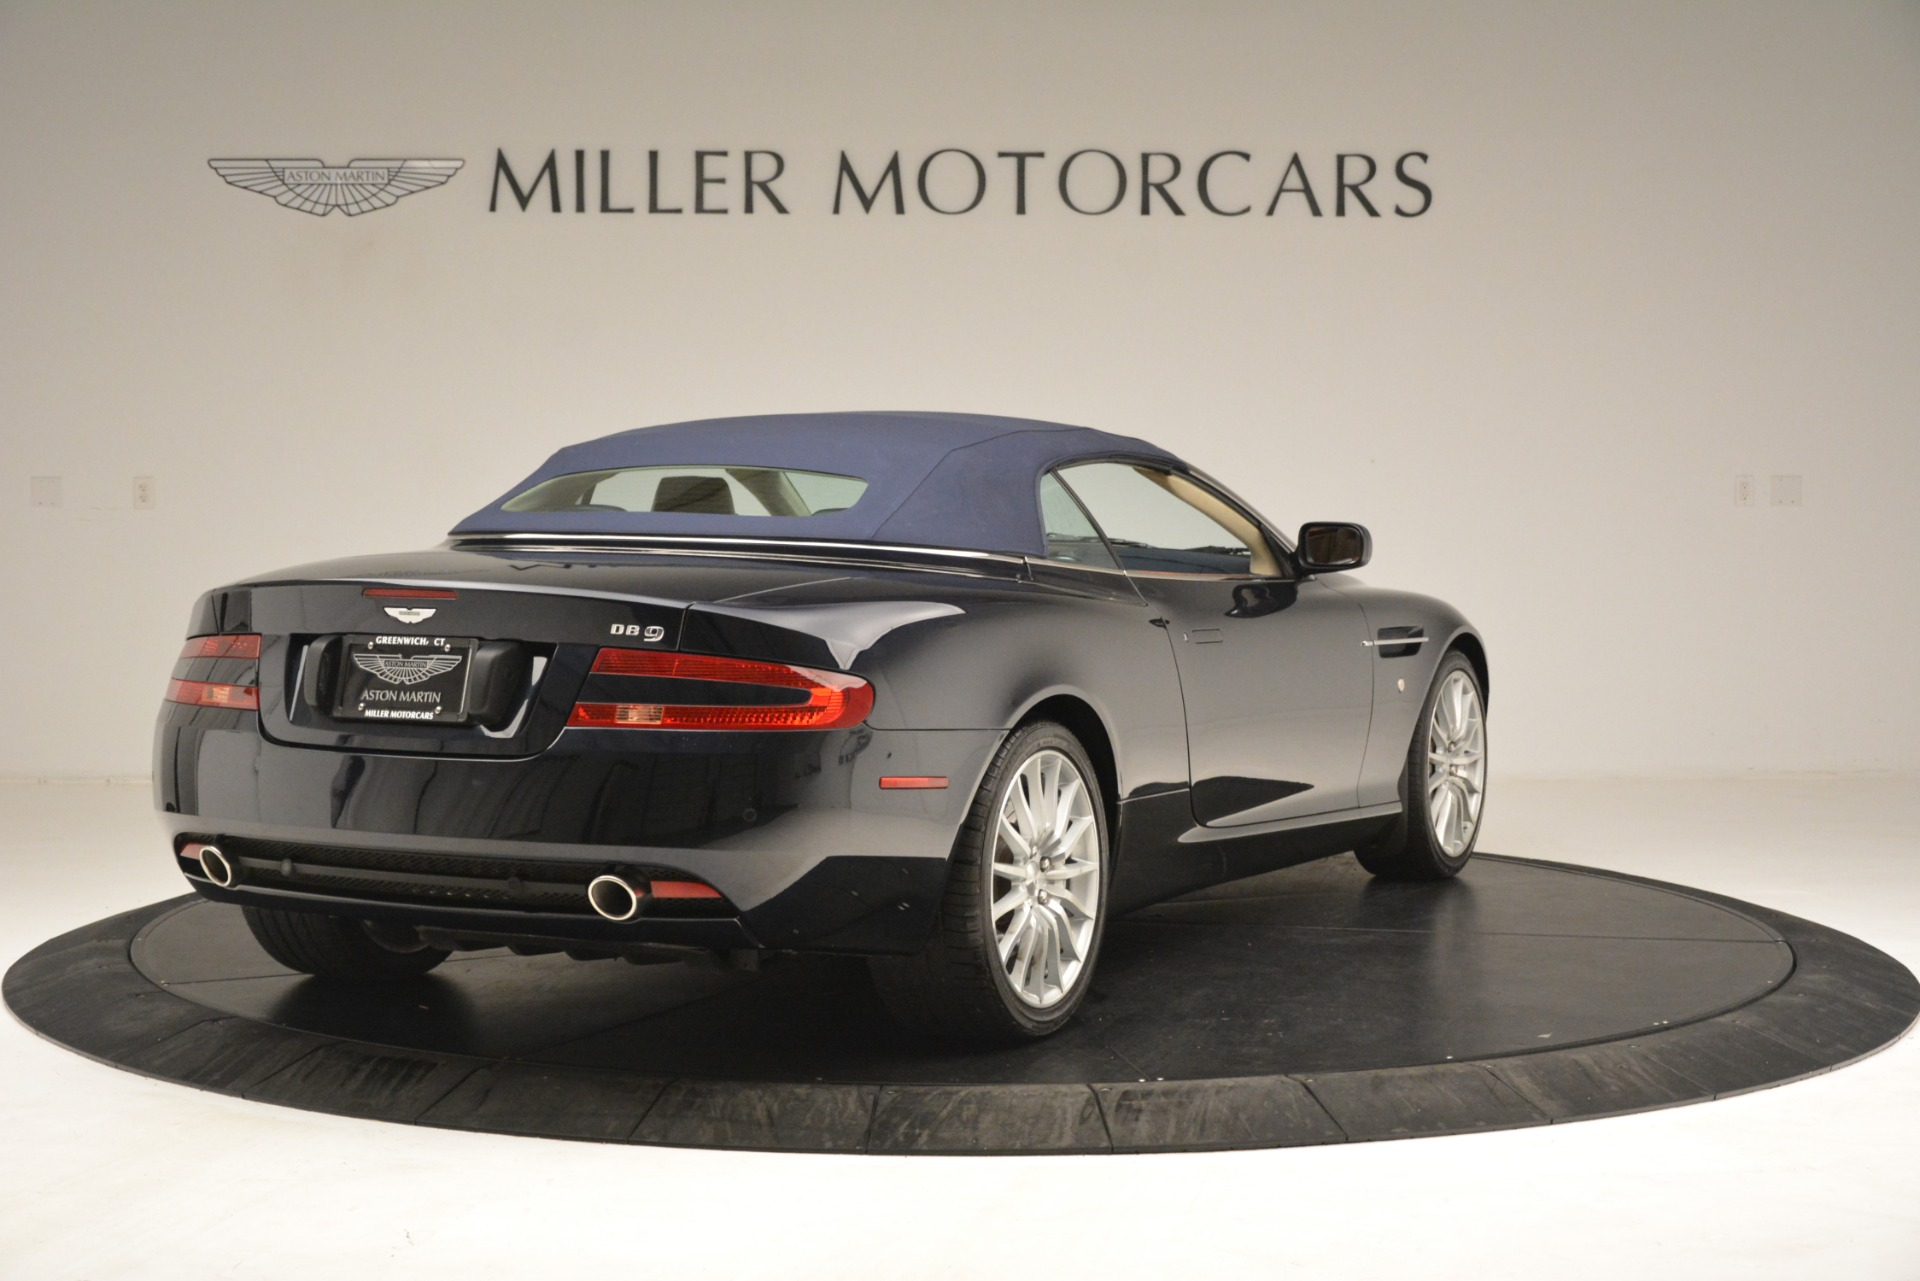 Used 2007 Aston Martin DB9 Convertible For Sale In Greenwich, CT 3291_p28